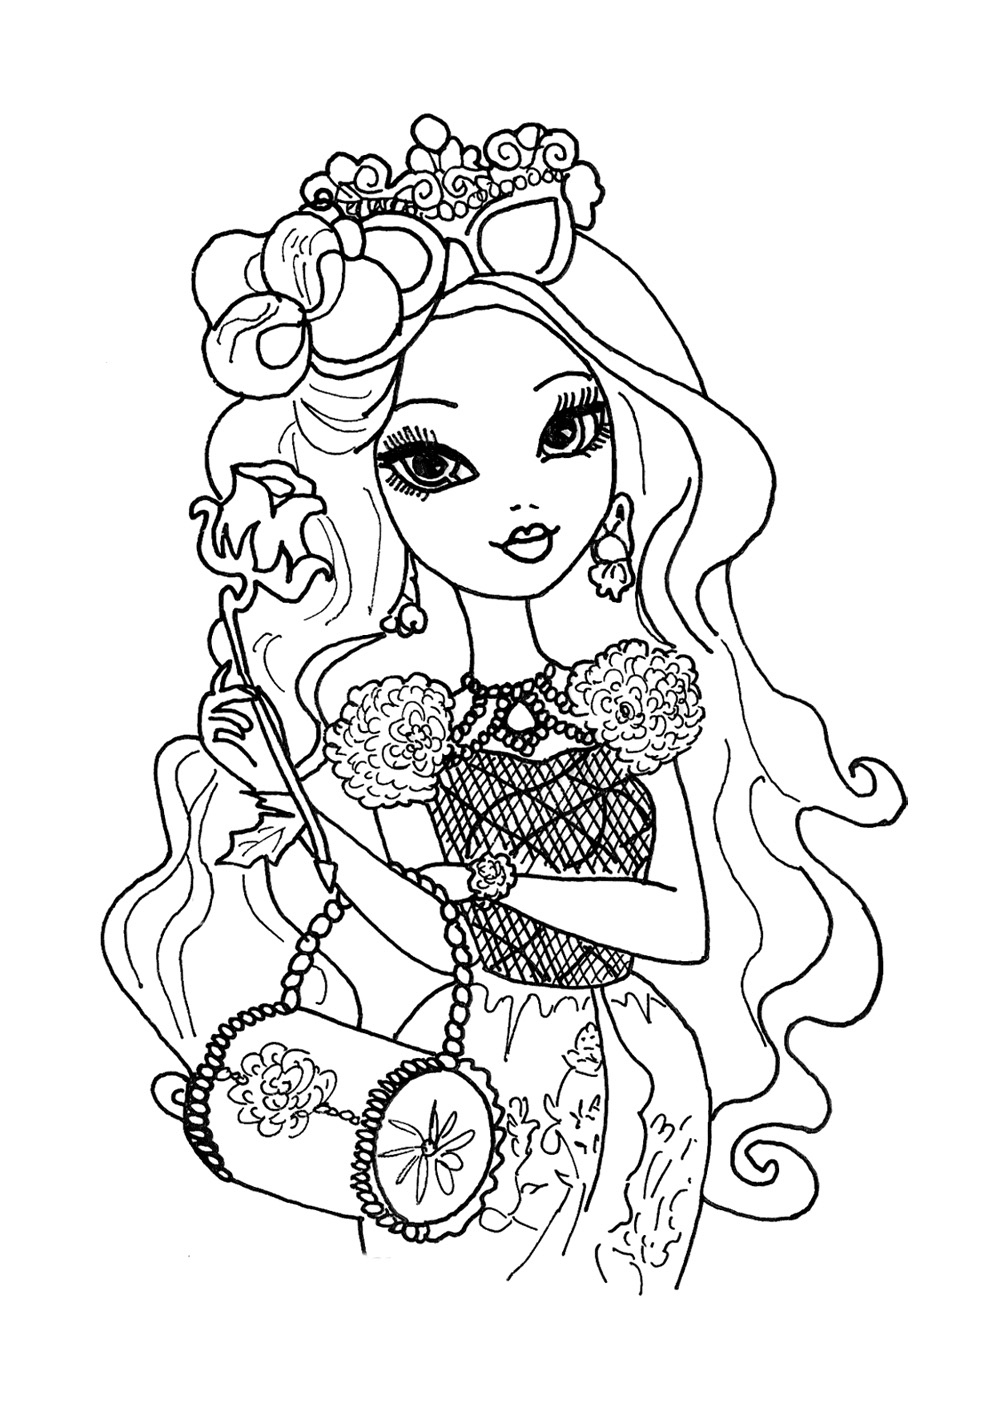 Ever After High coloring pages to download and print for free | colouring pages online to print